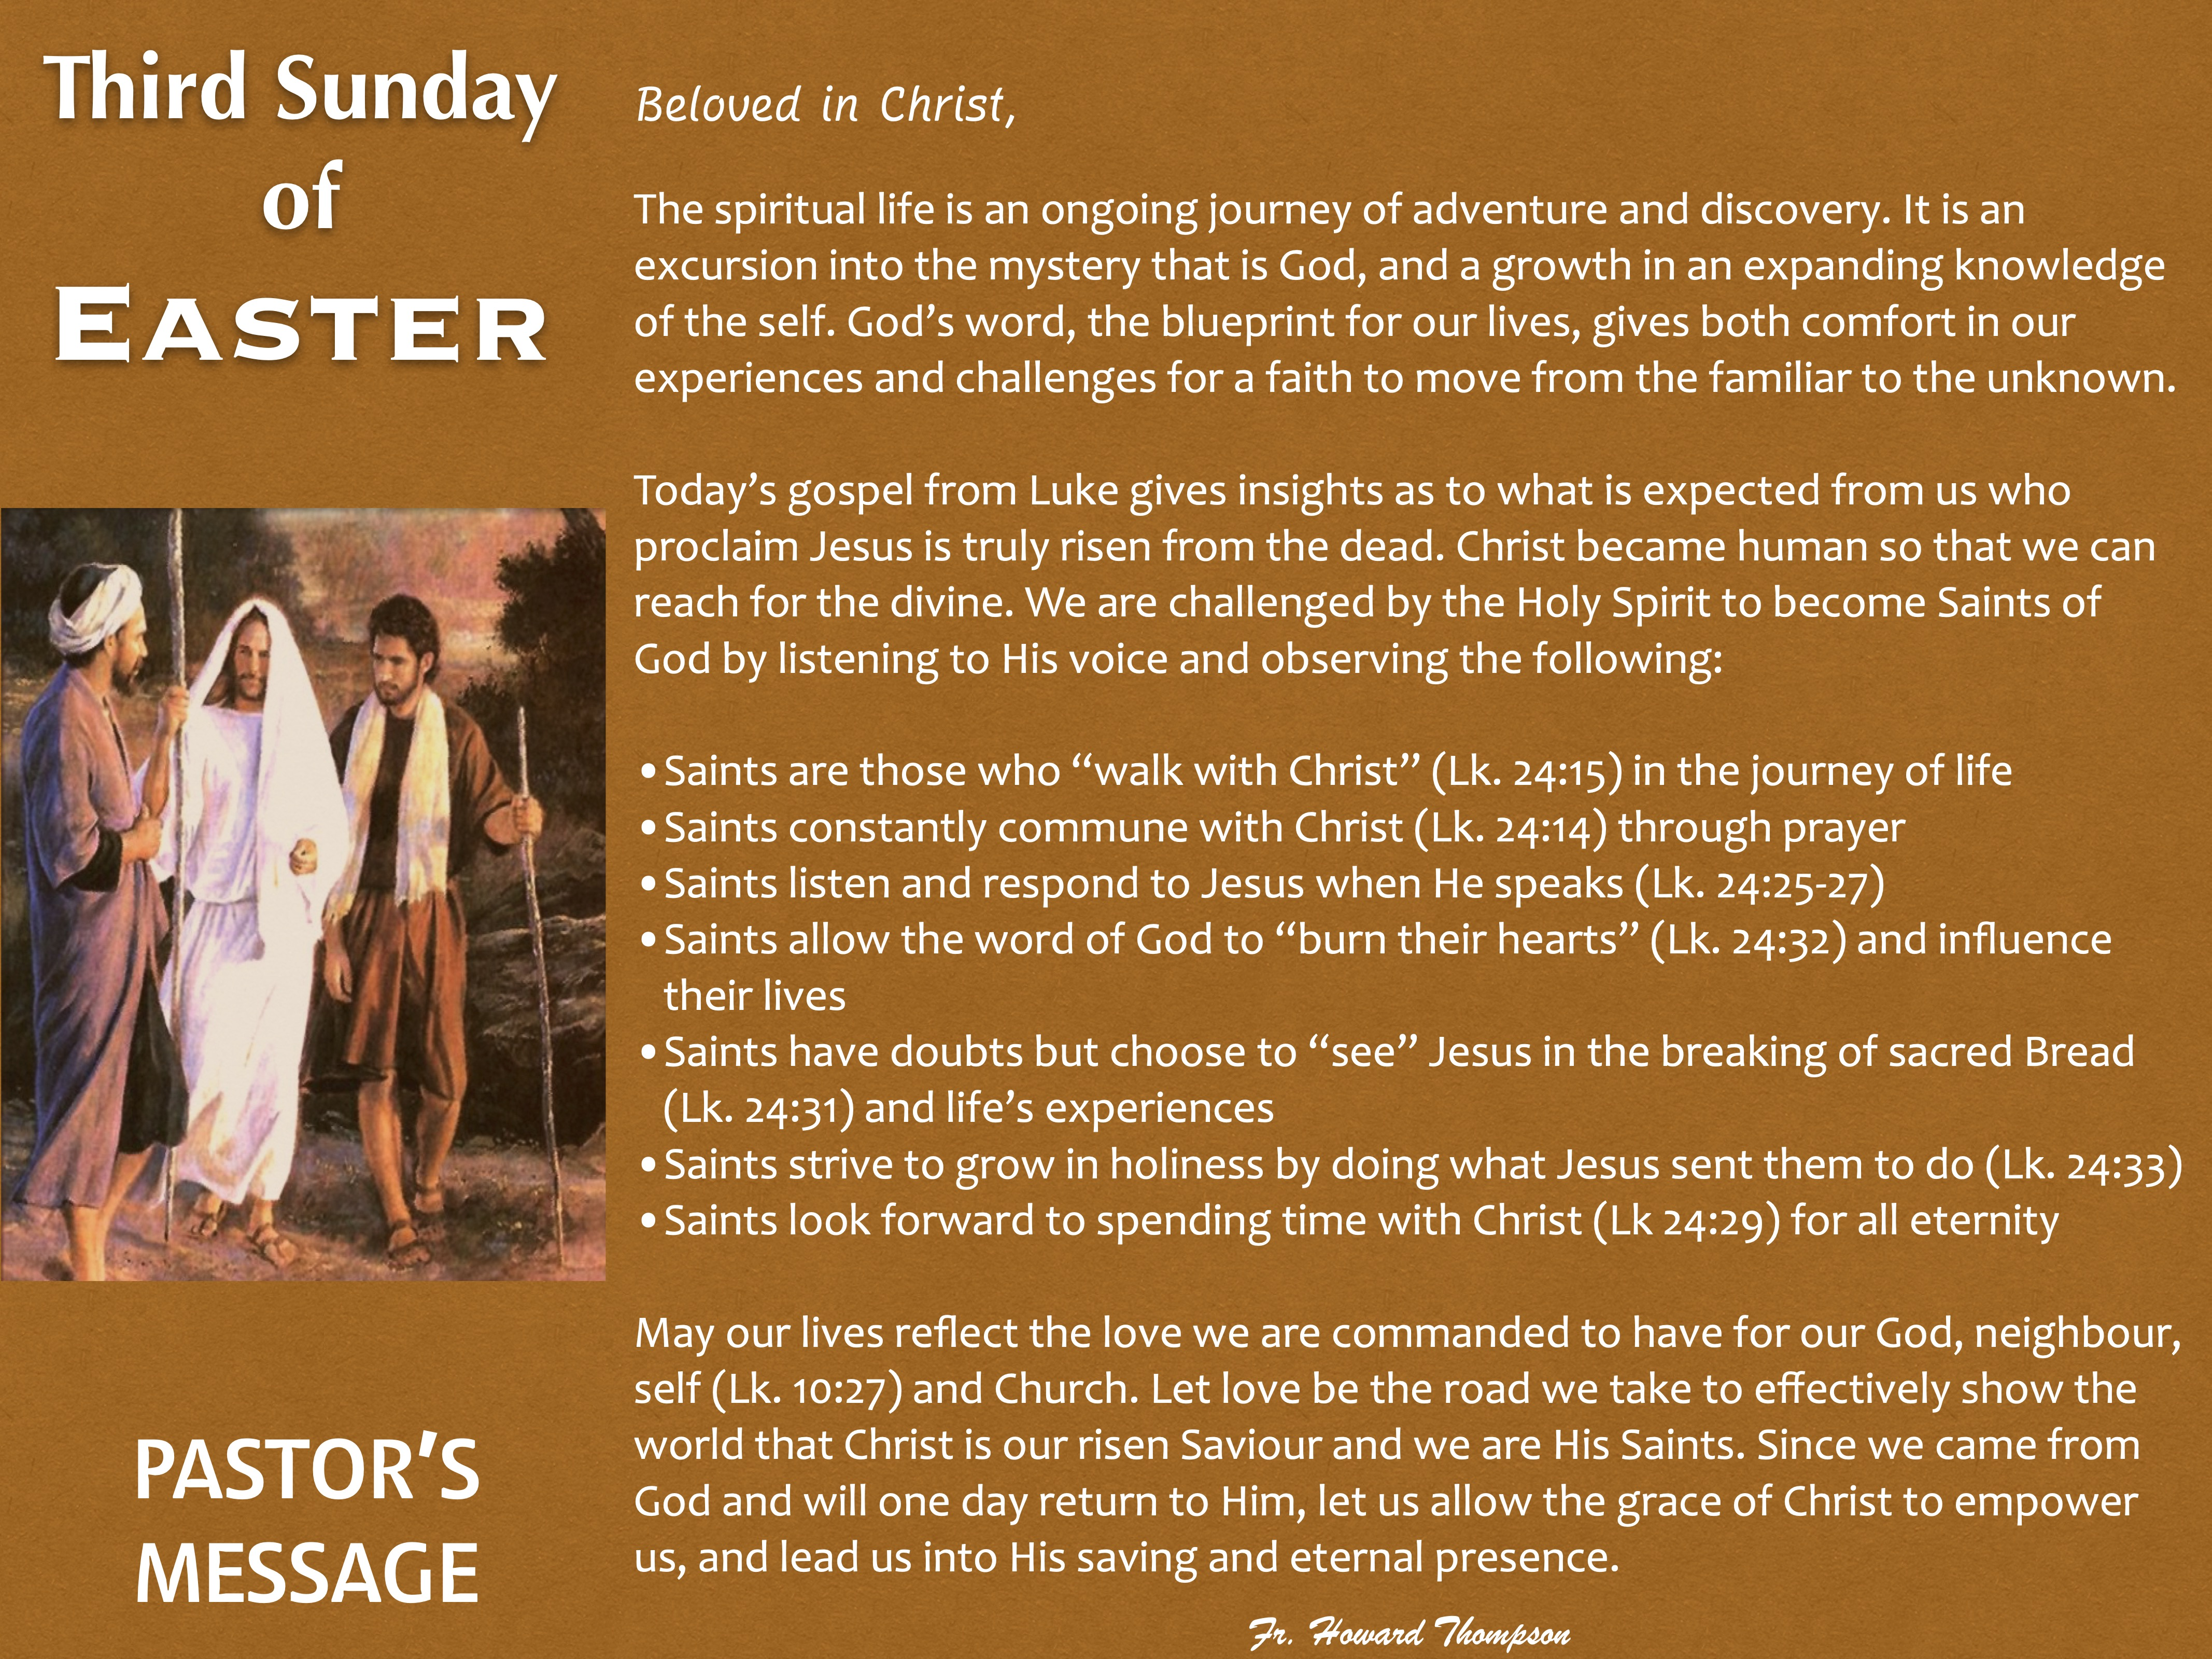 Pastor's Message - 110 Third Sunday of E